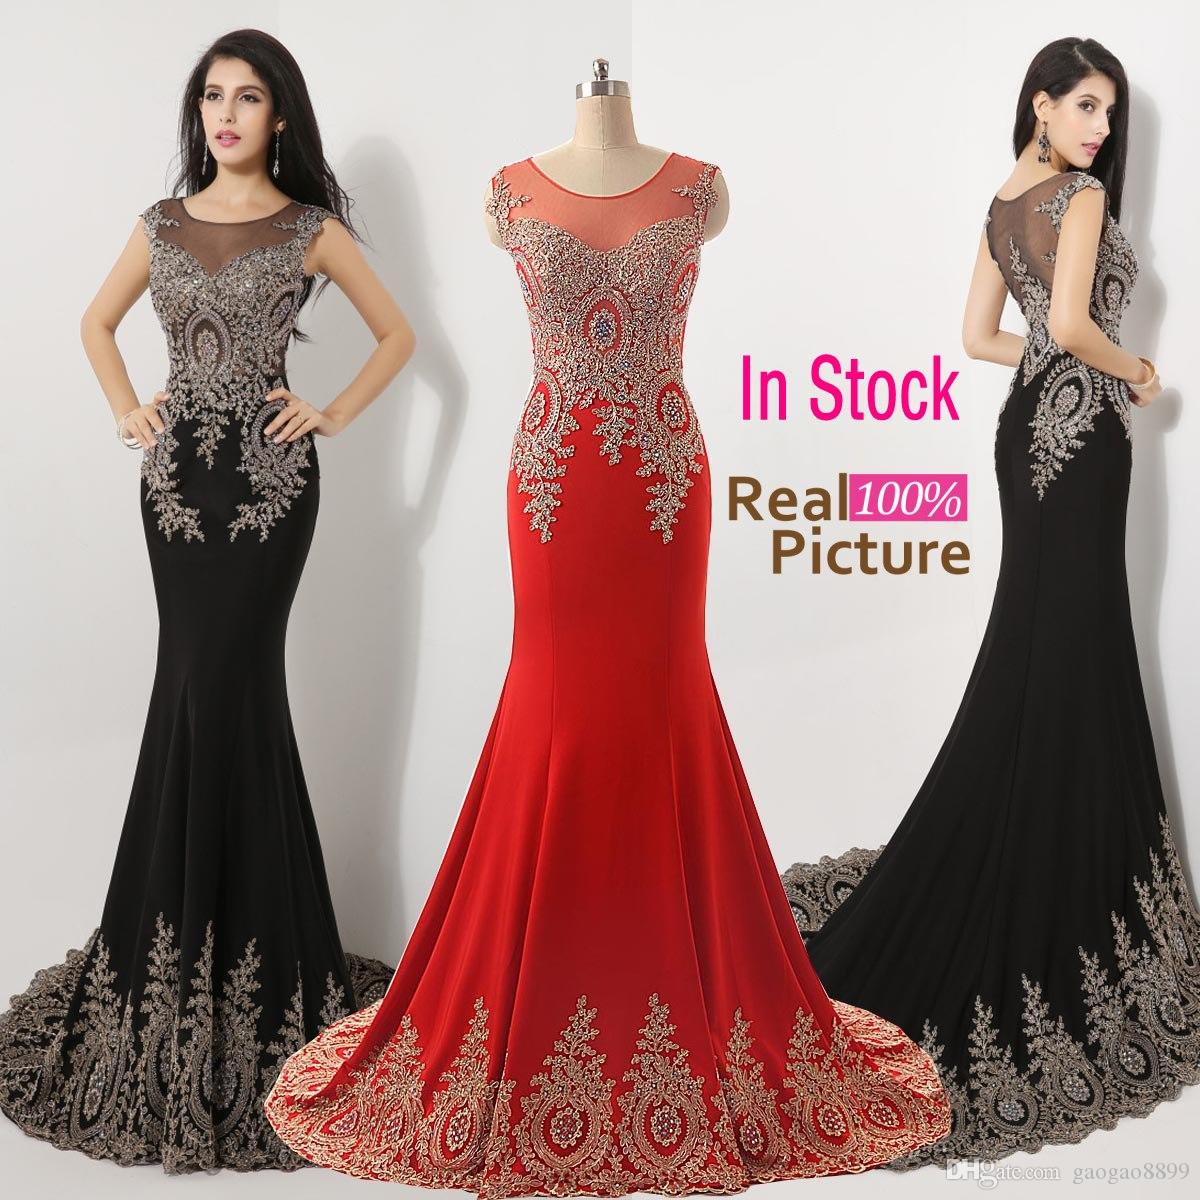 Clothing stores Good quality clothing stores